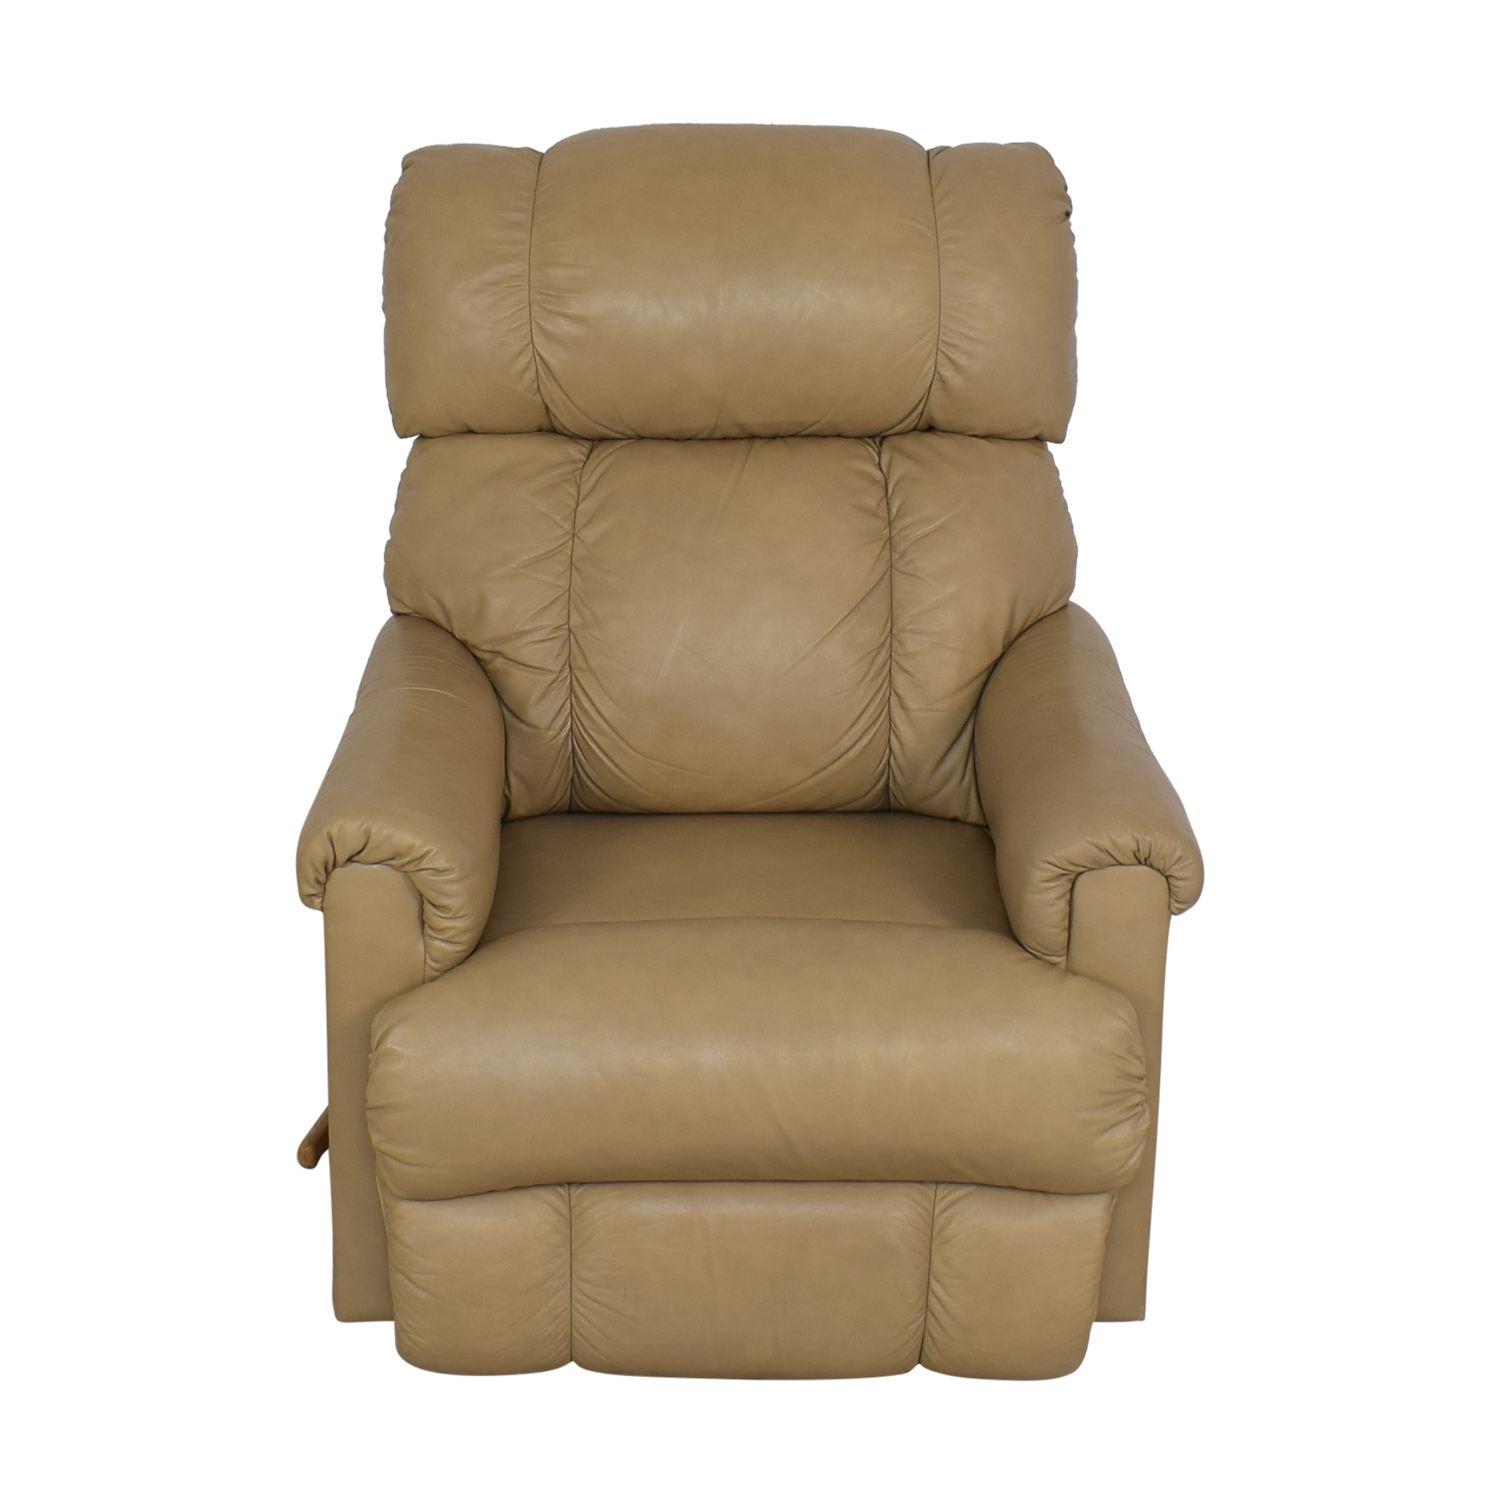 La-Z-Boy Recliner / Chairs